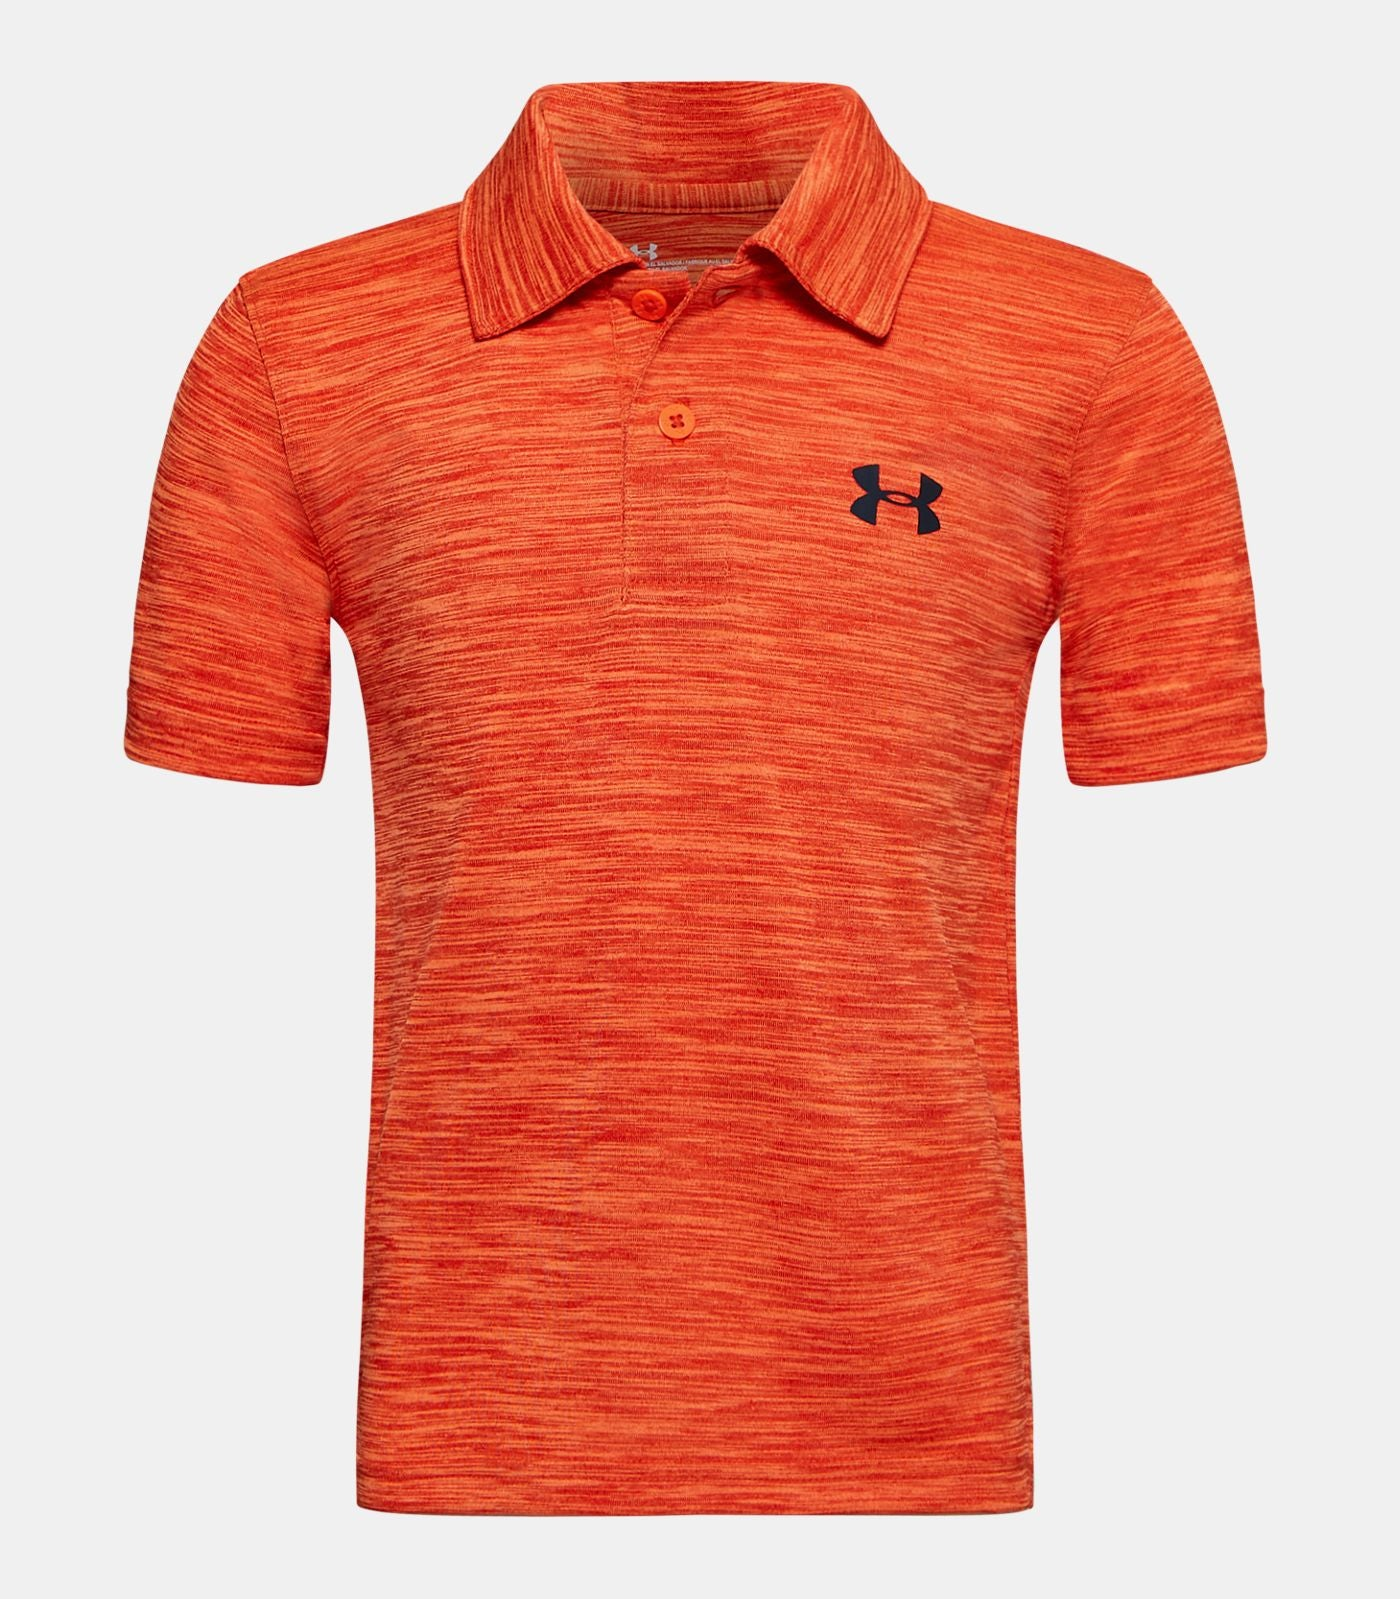 Under Armour Boys' Match Play Twist Polo